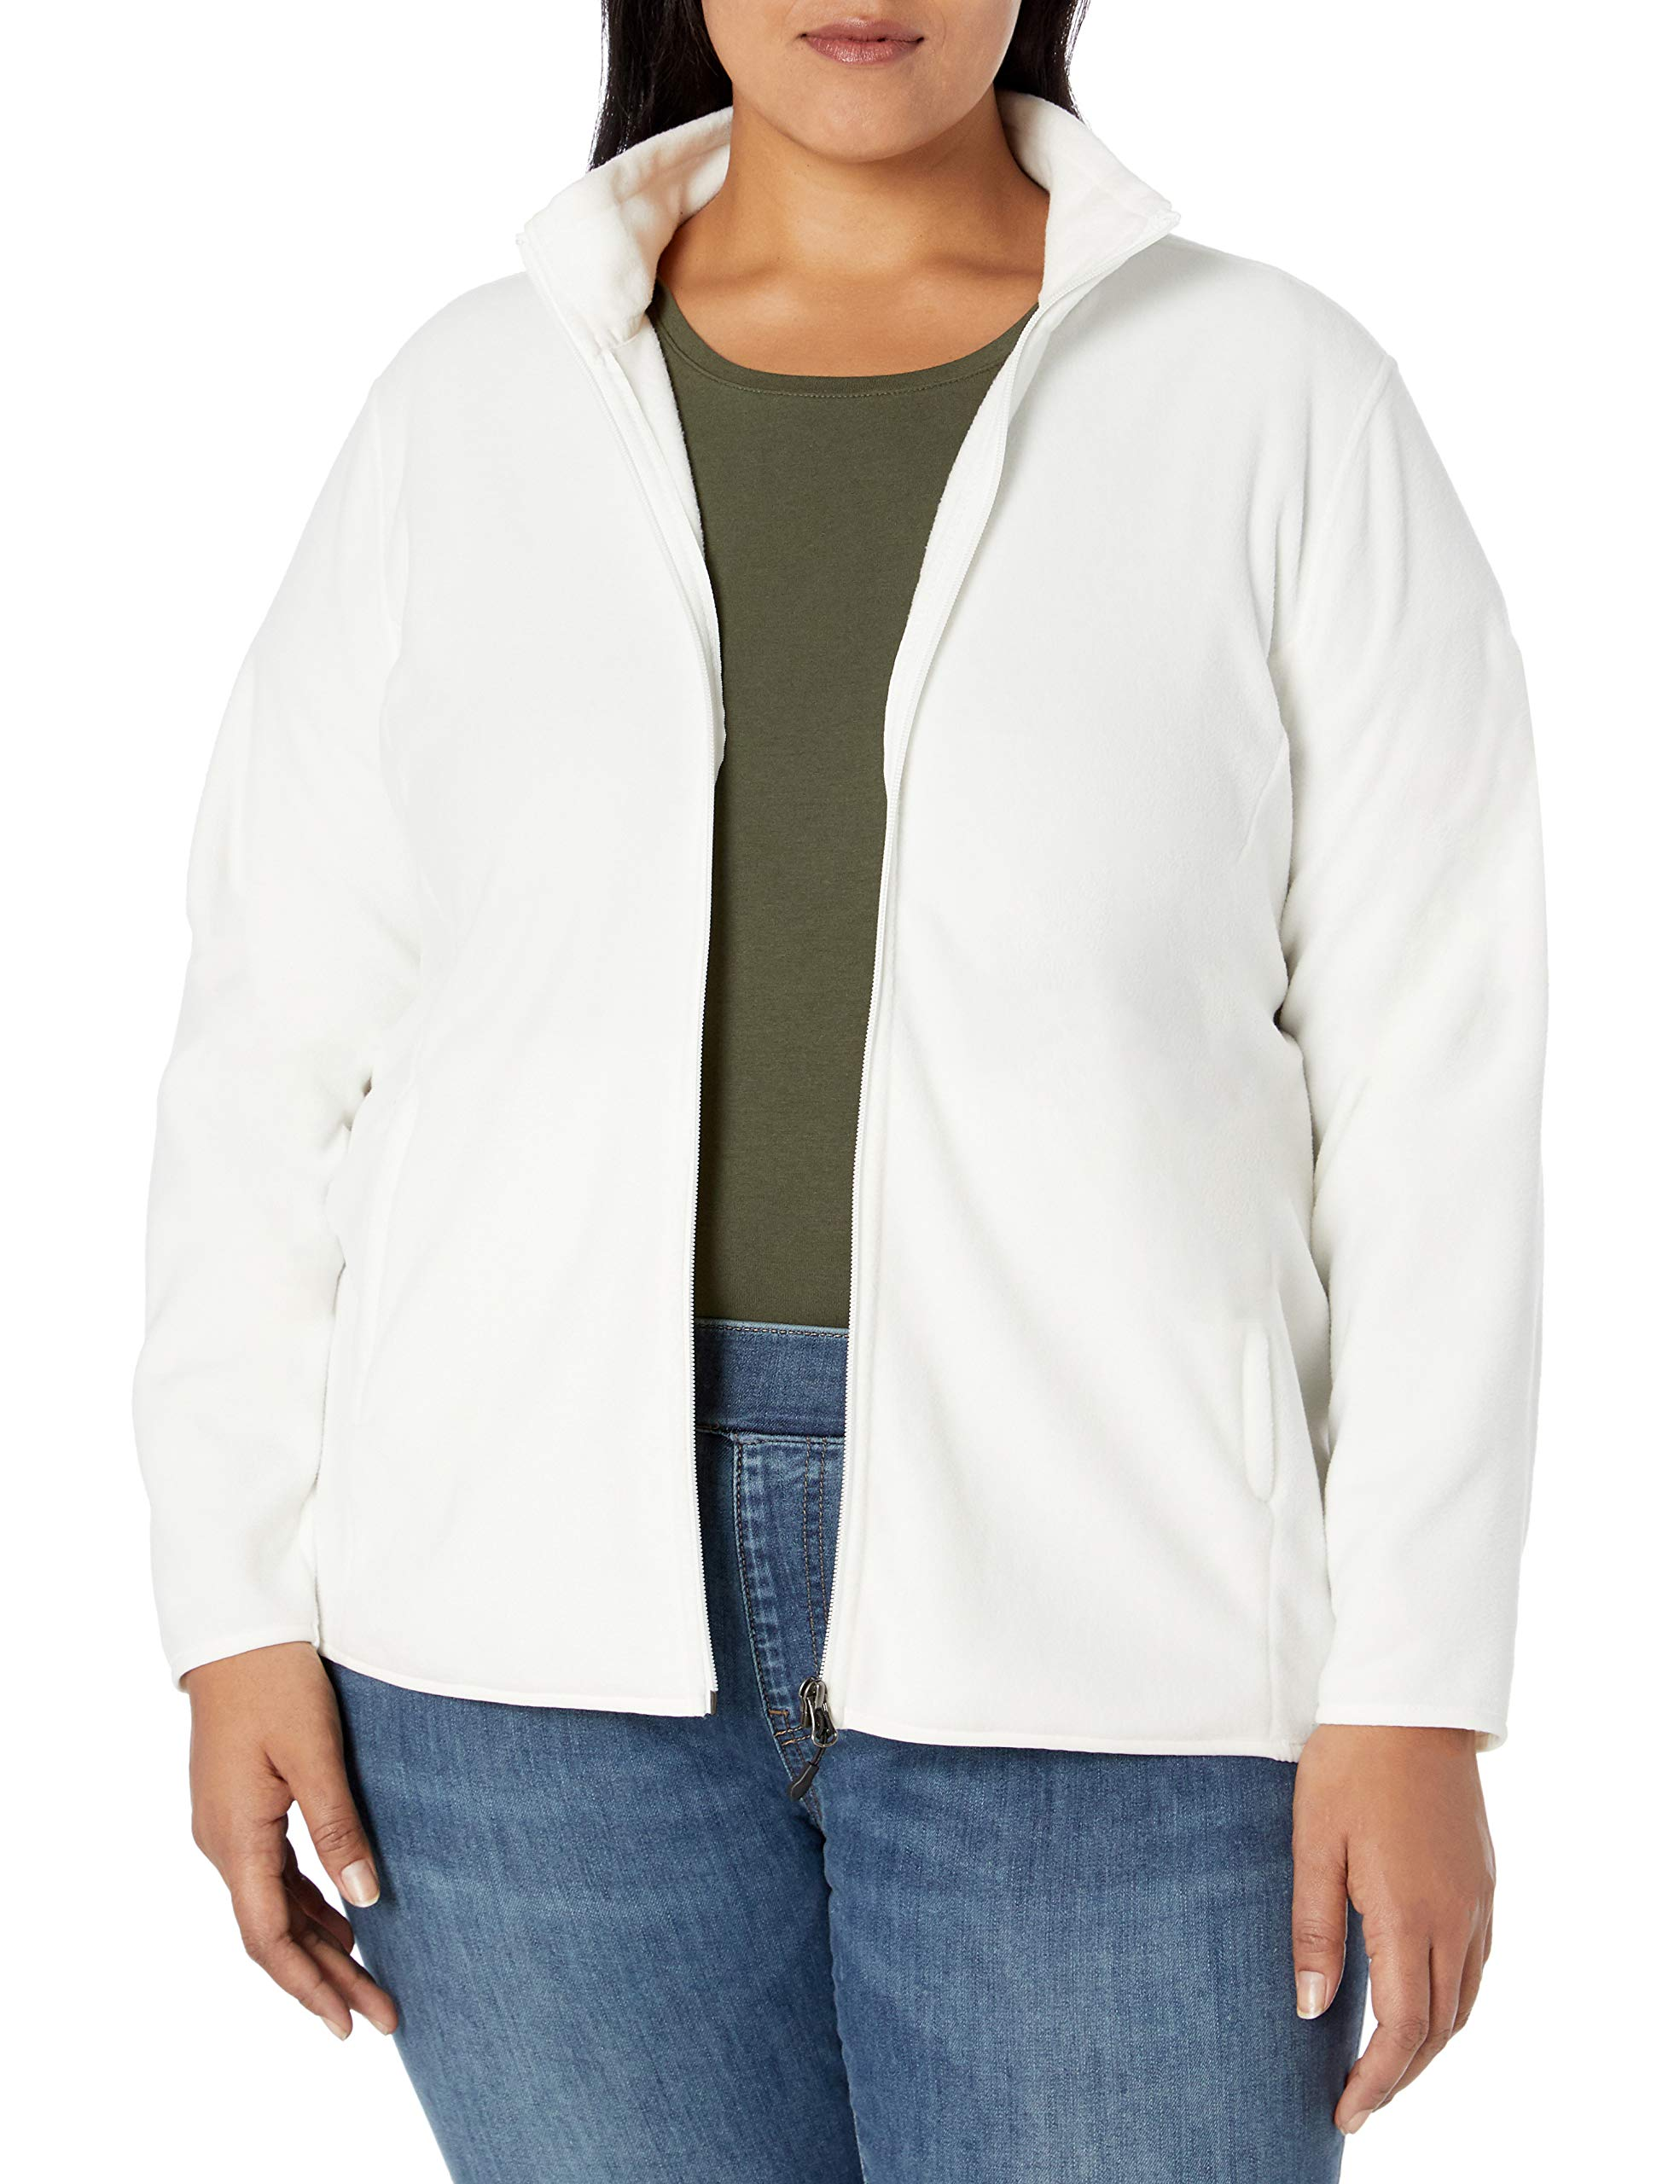 Essentials Womens Plus Size Full-Zip Polar Fleece Jacket